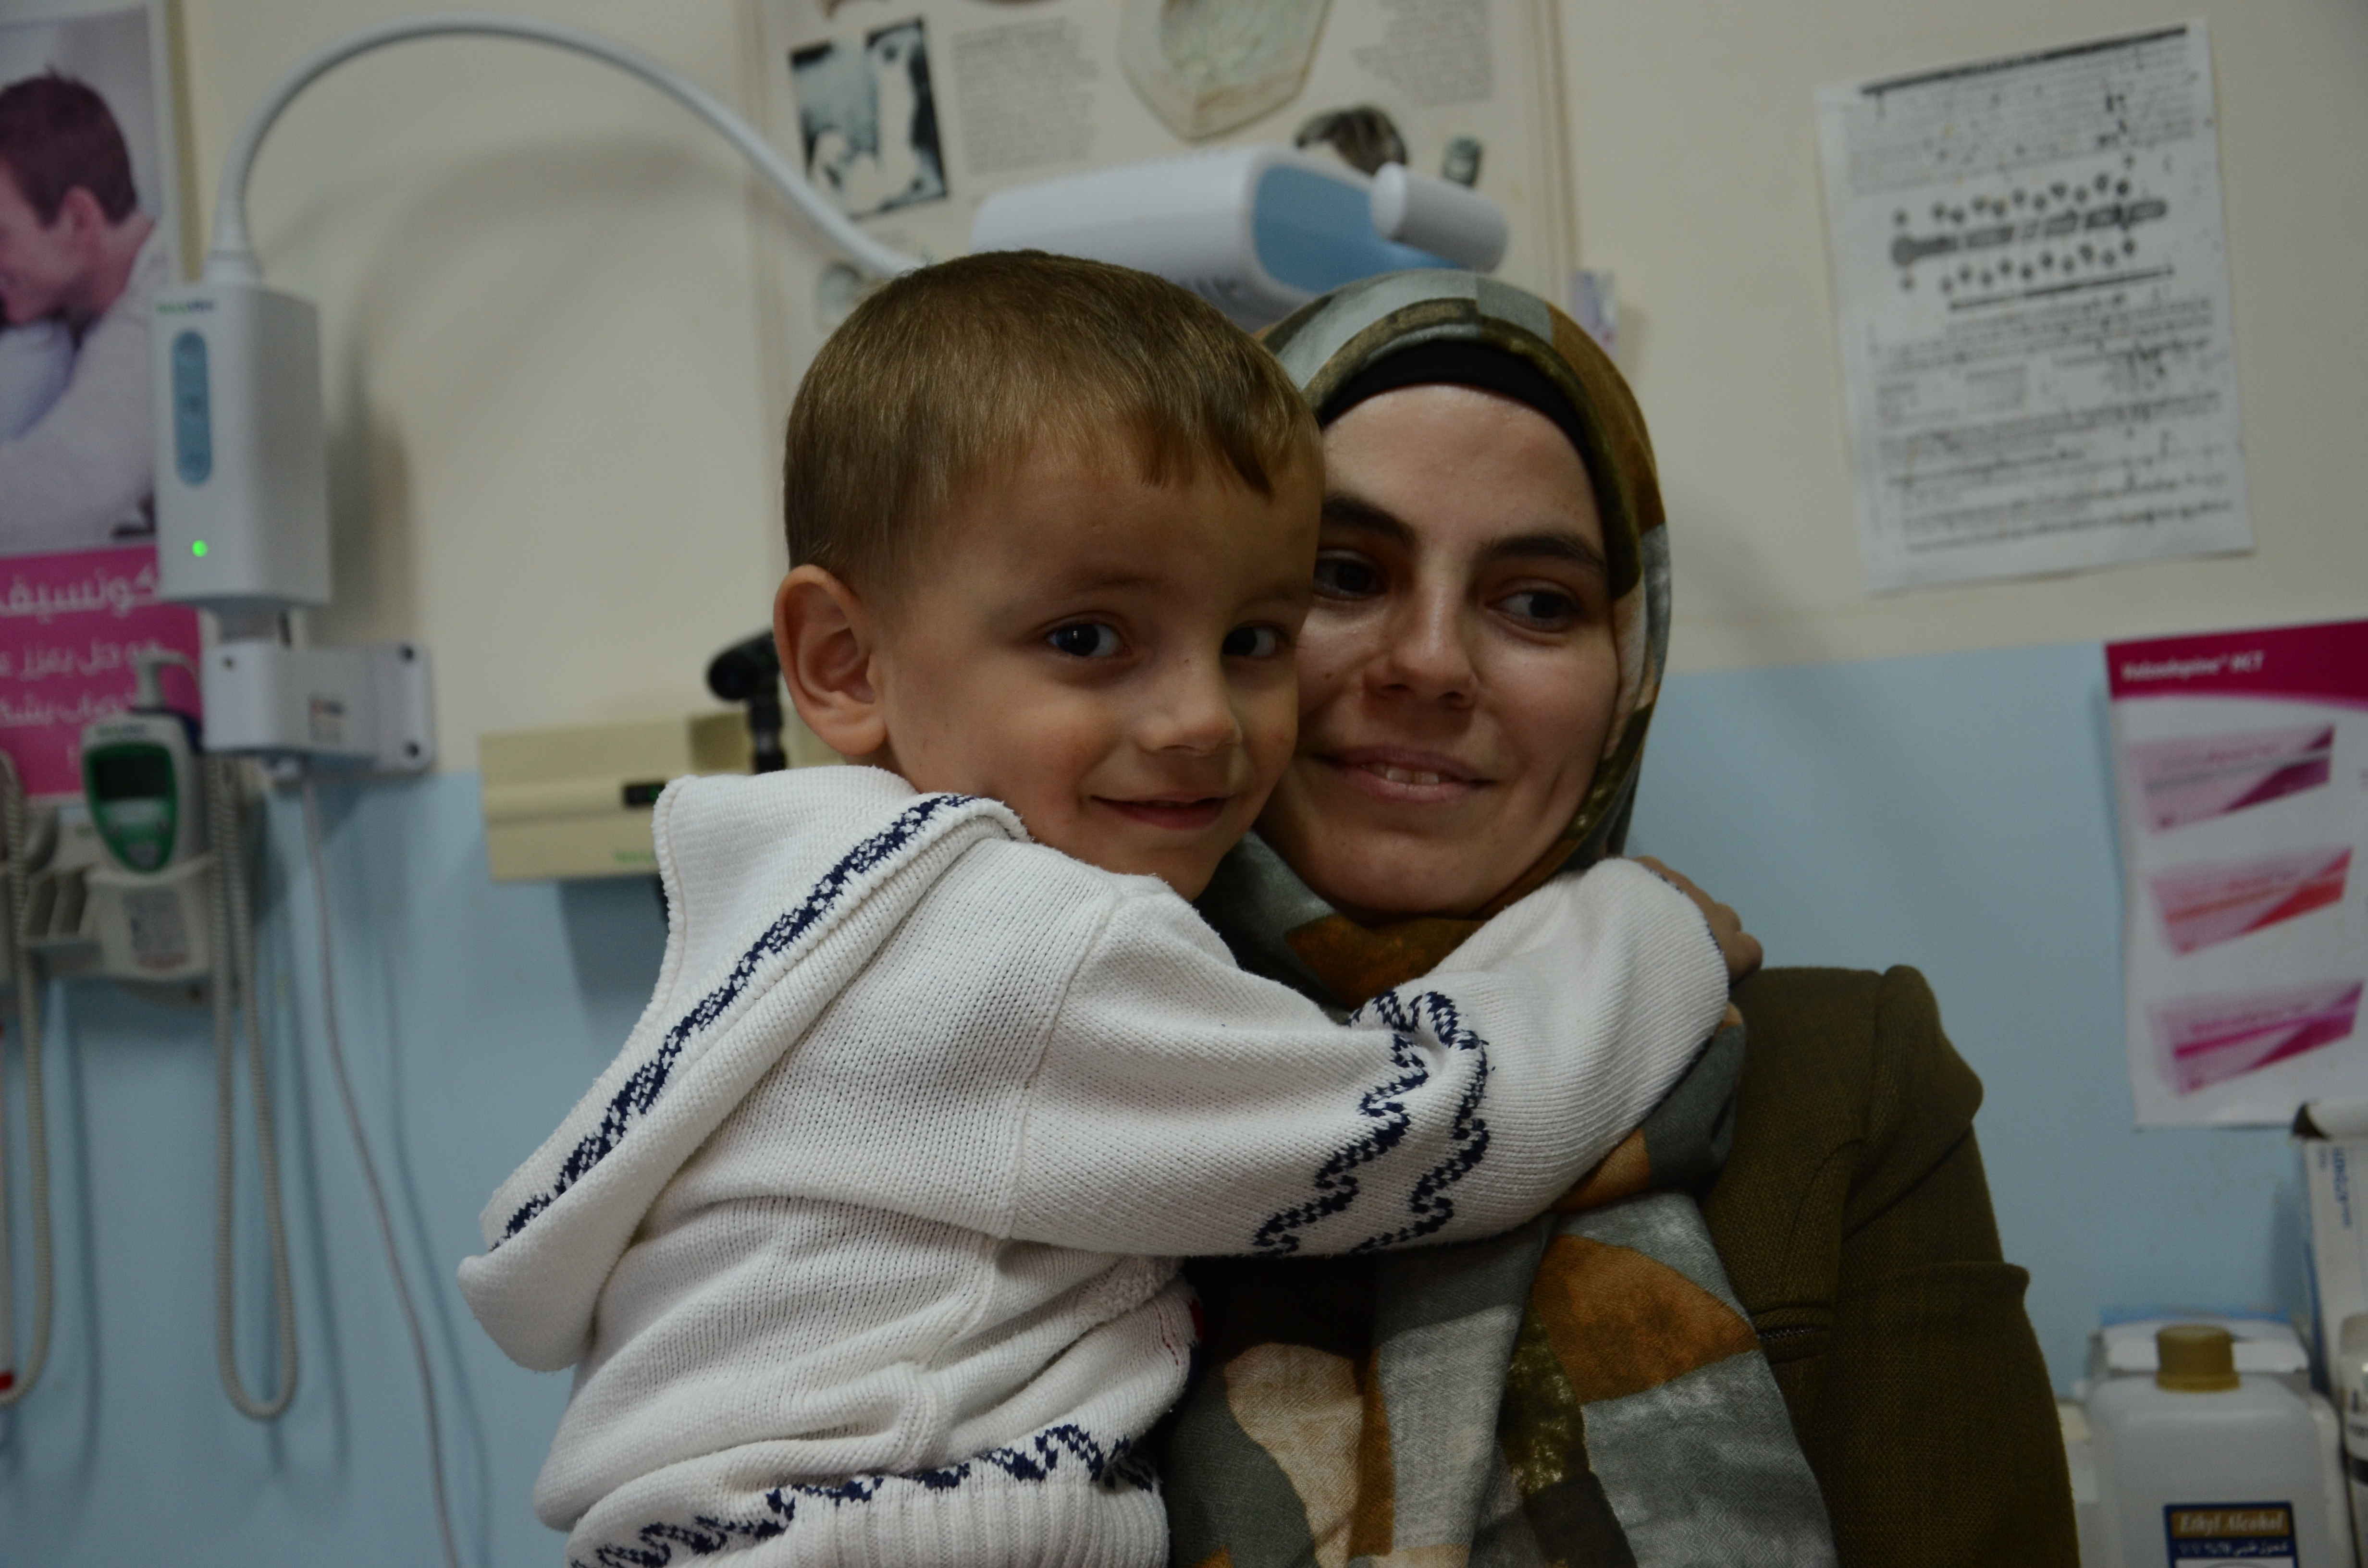 Yusa and her youngest son, Muhannad, pictured here at Hebron Charitable Medical Center. (Photo courtesy of Anera)